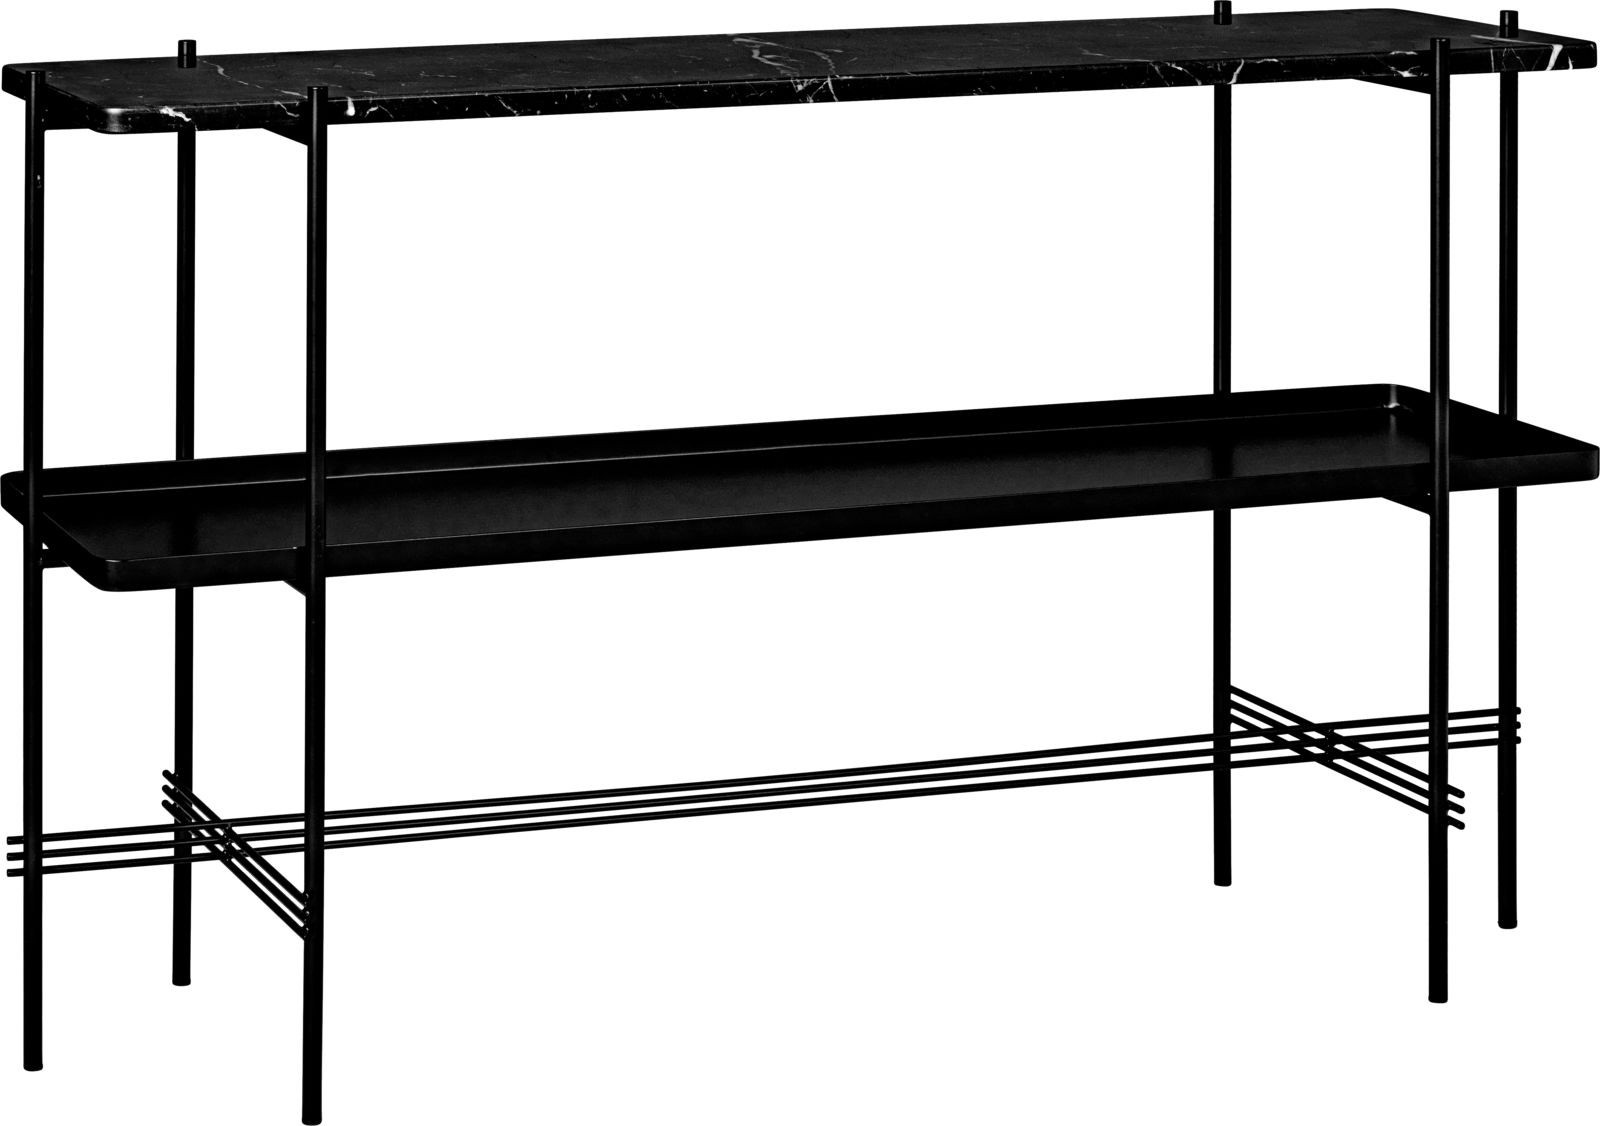 GUBI TS Console 2 Rack Table with Tray- 120 x 30 cm